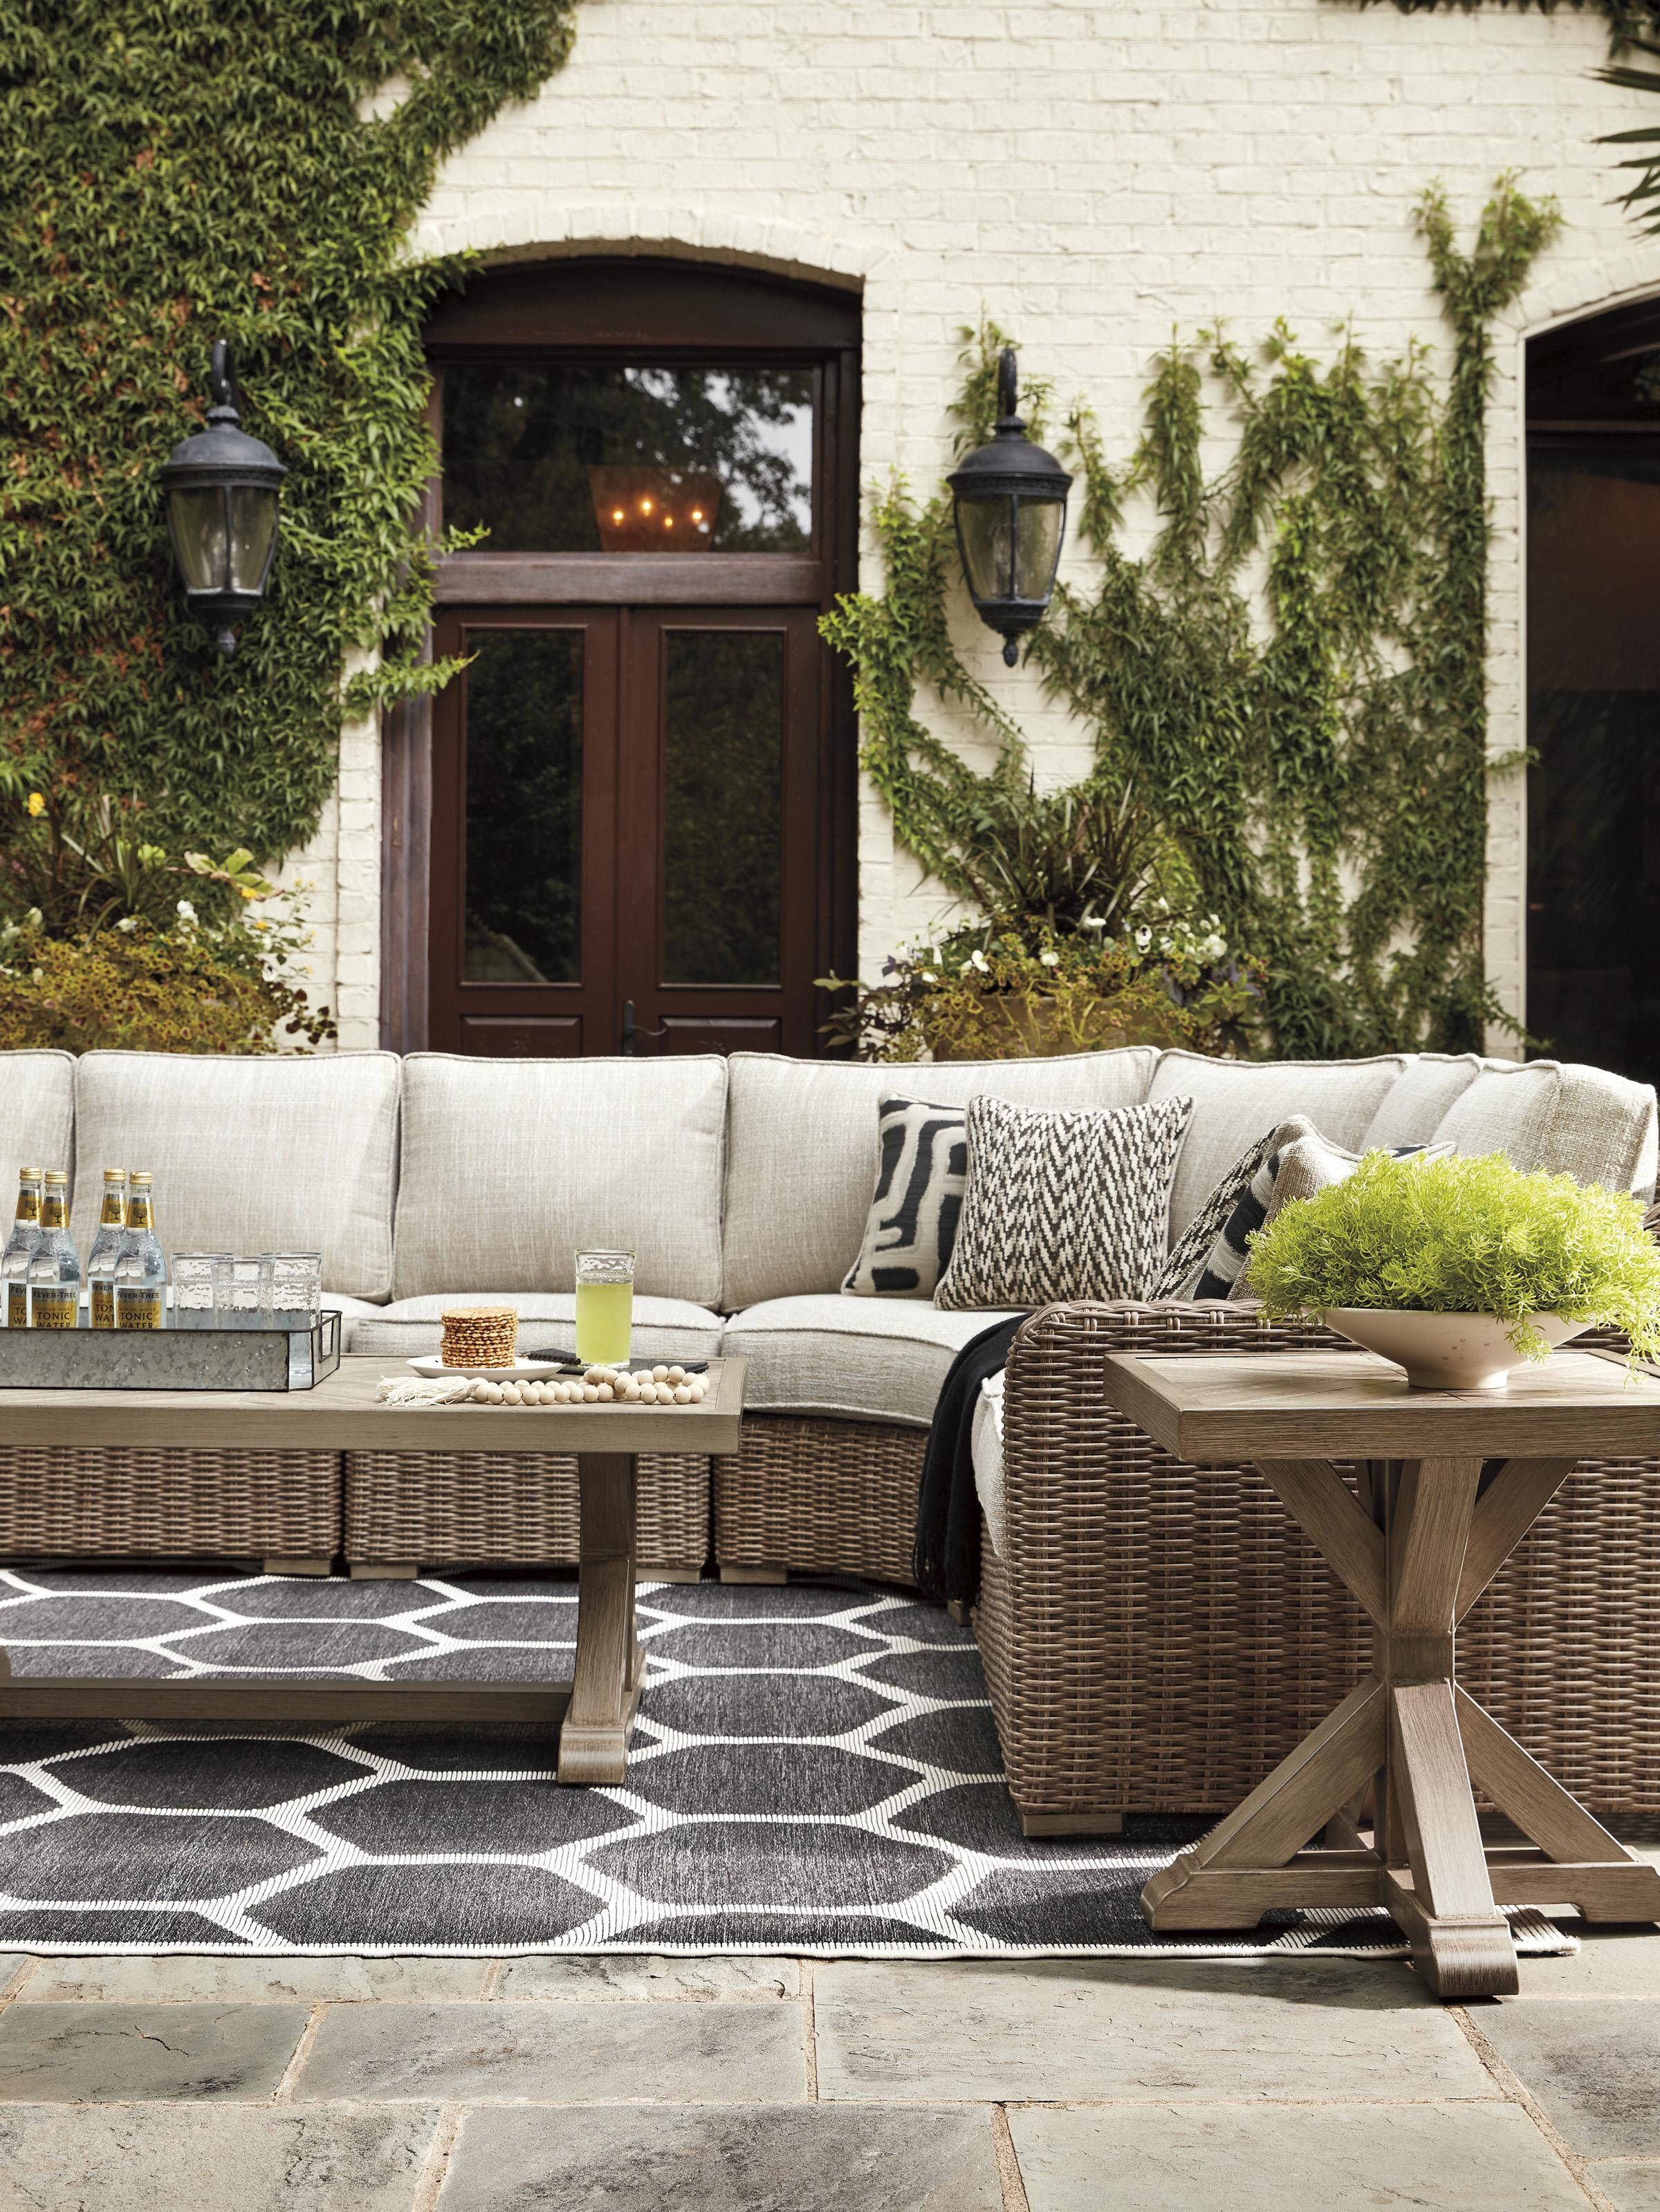 6 PC Outdoor Conversation Set